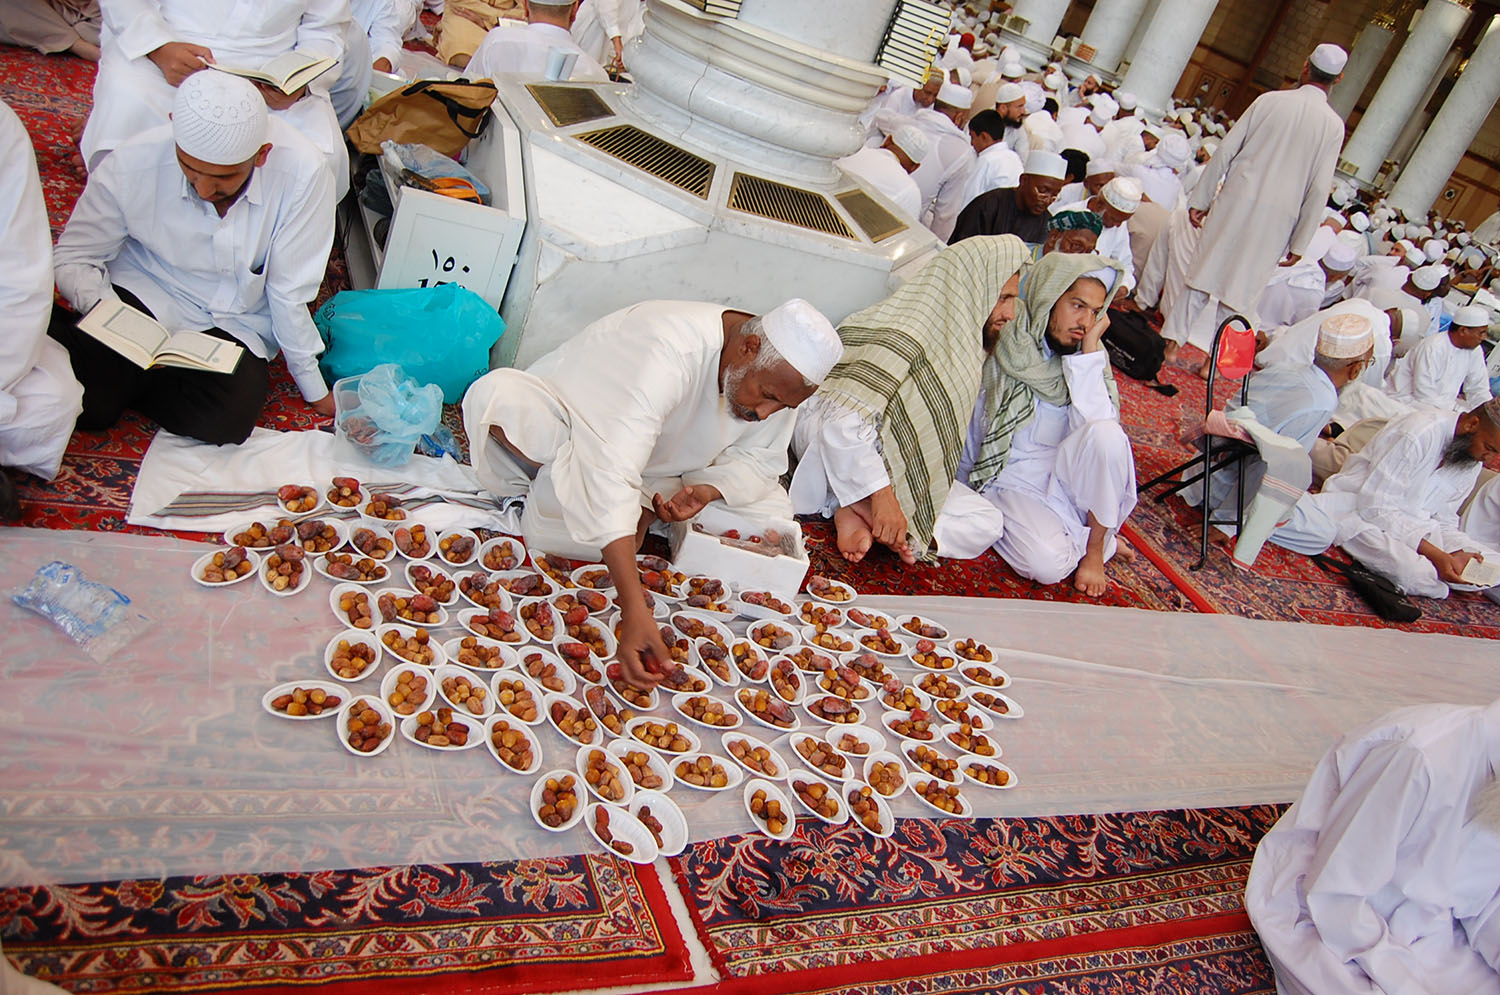 A feast of dates is laid out inside the mosque.